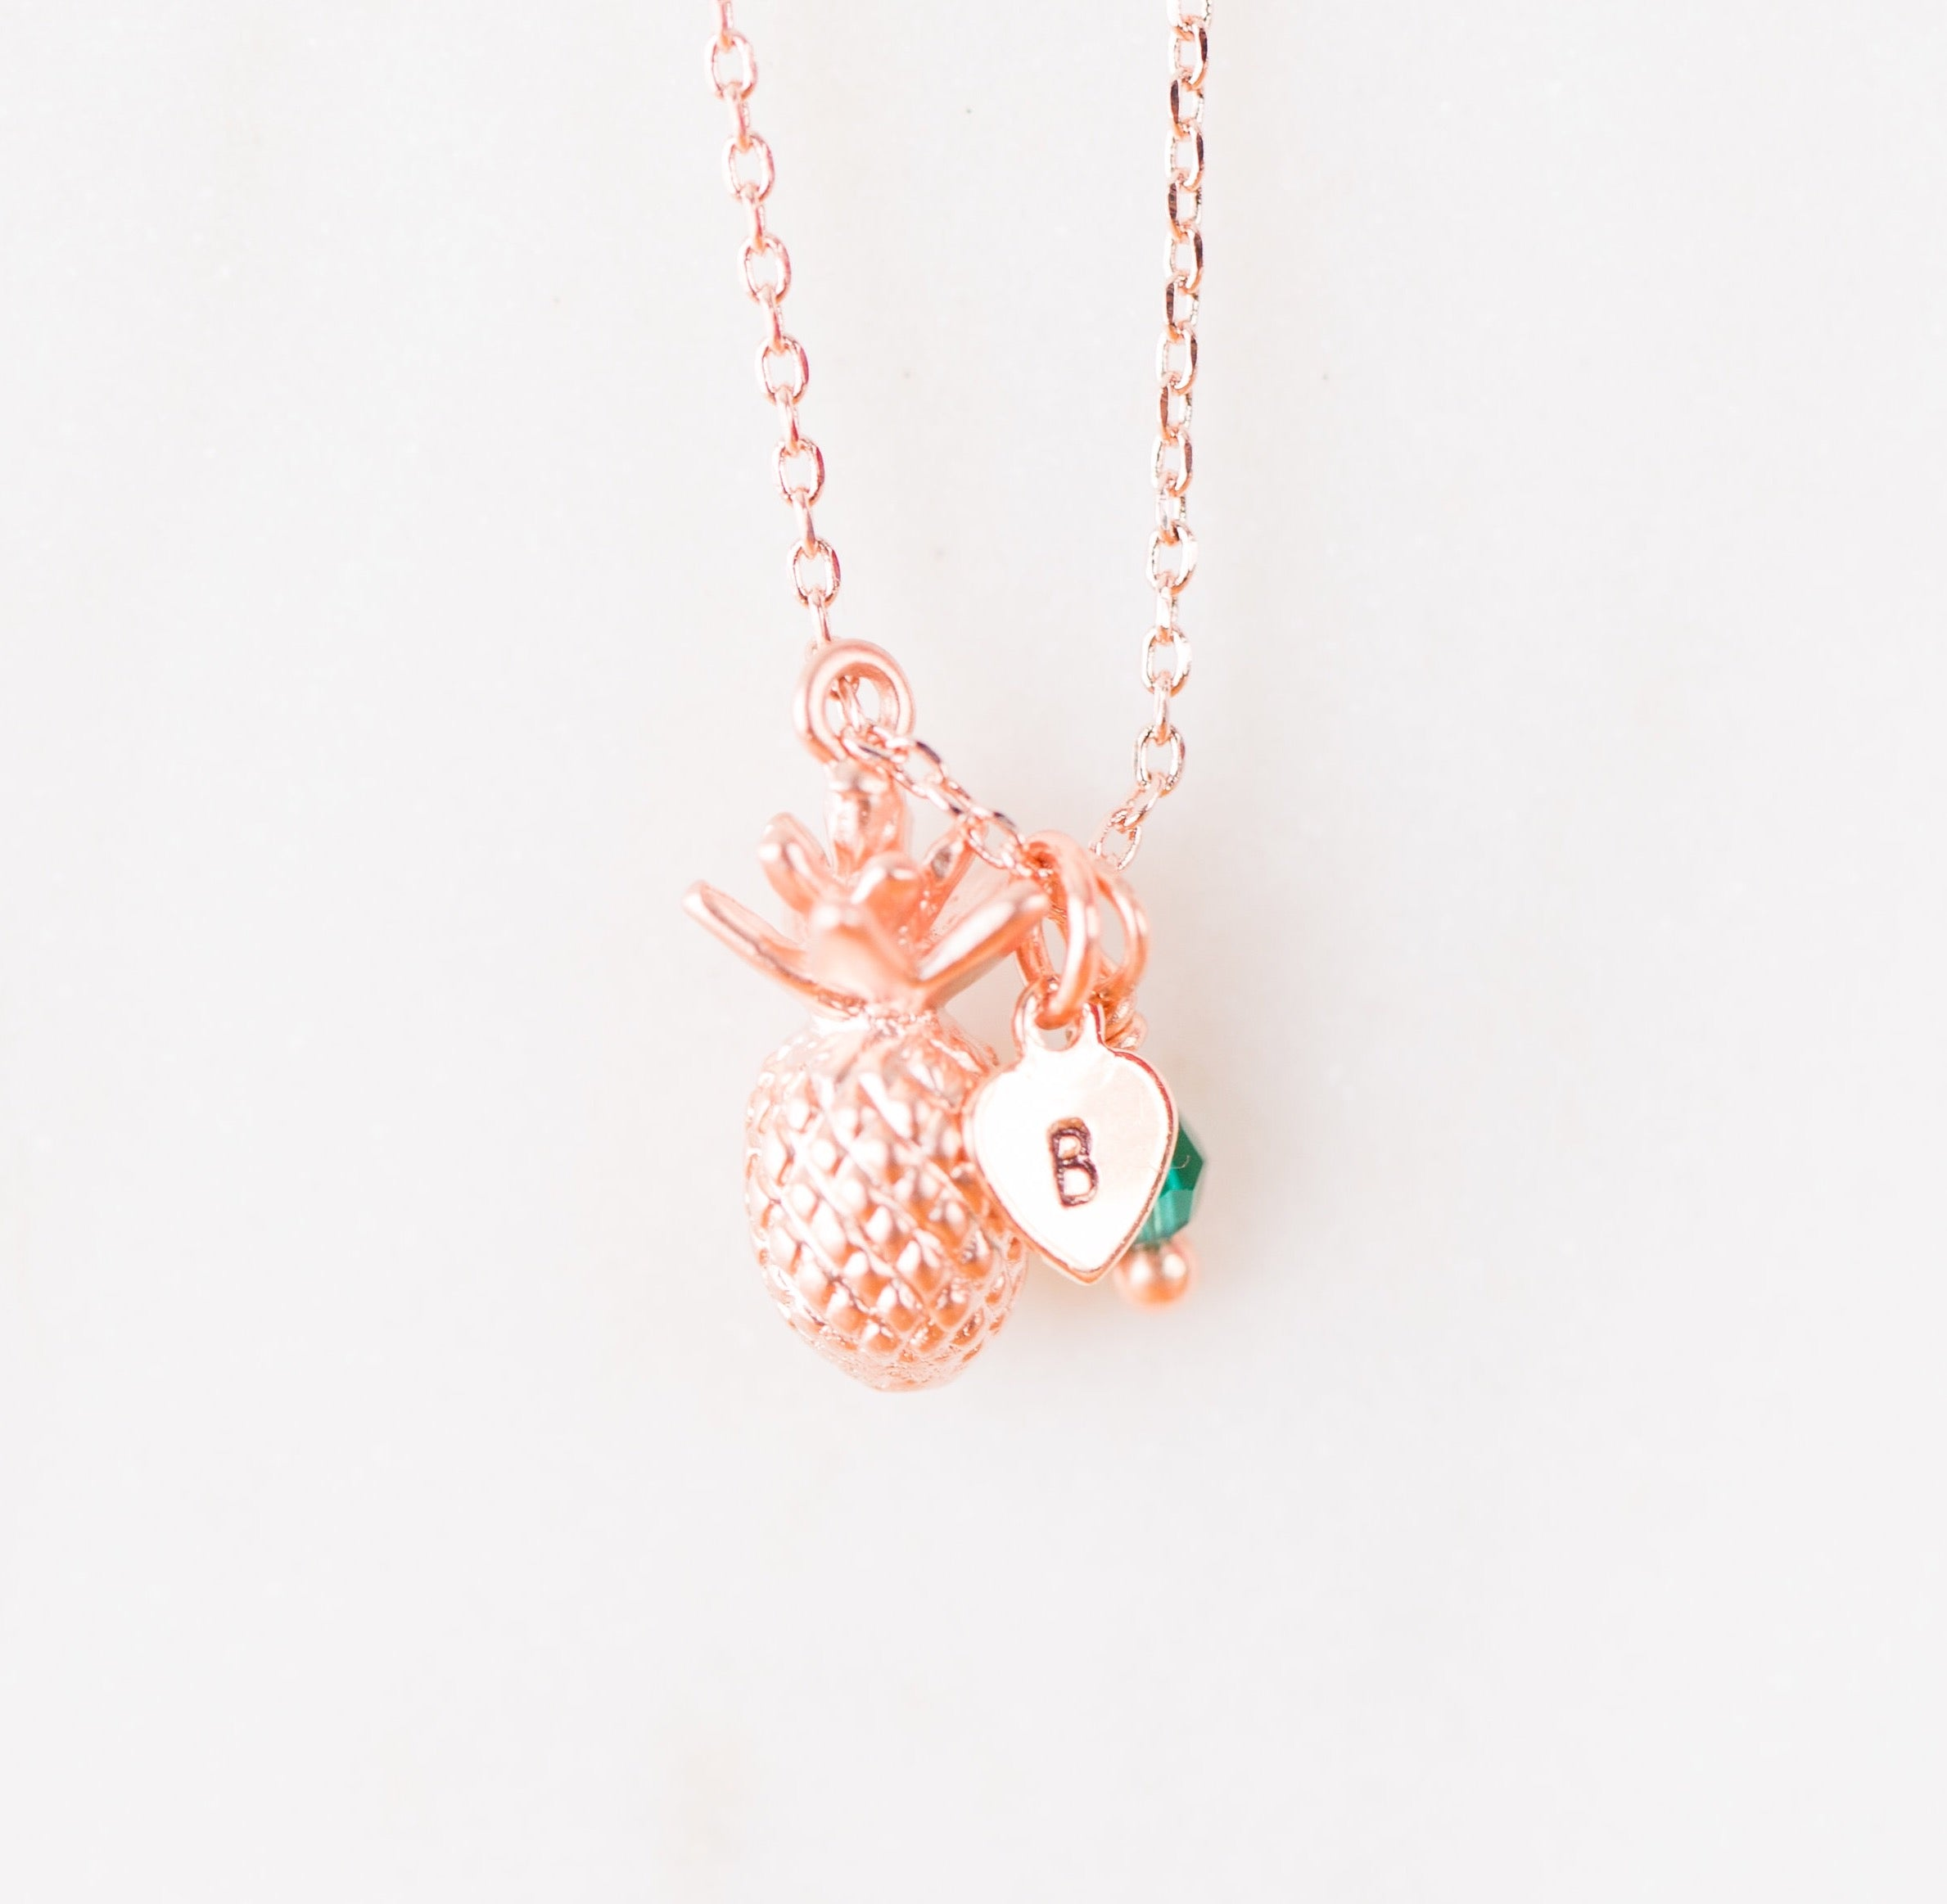 telita products l necklace pineapple